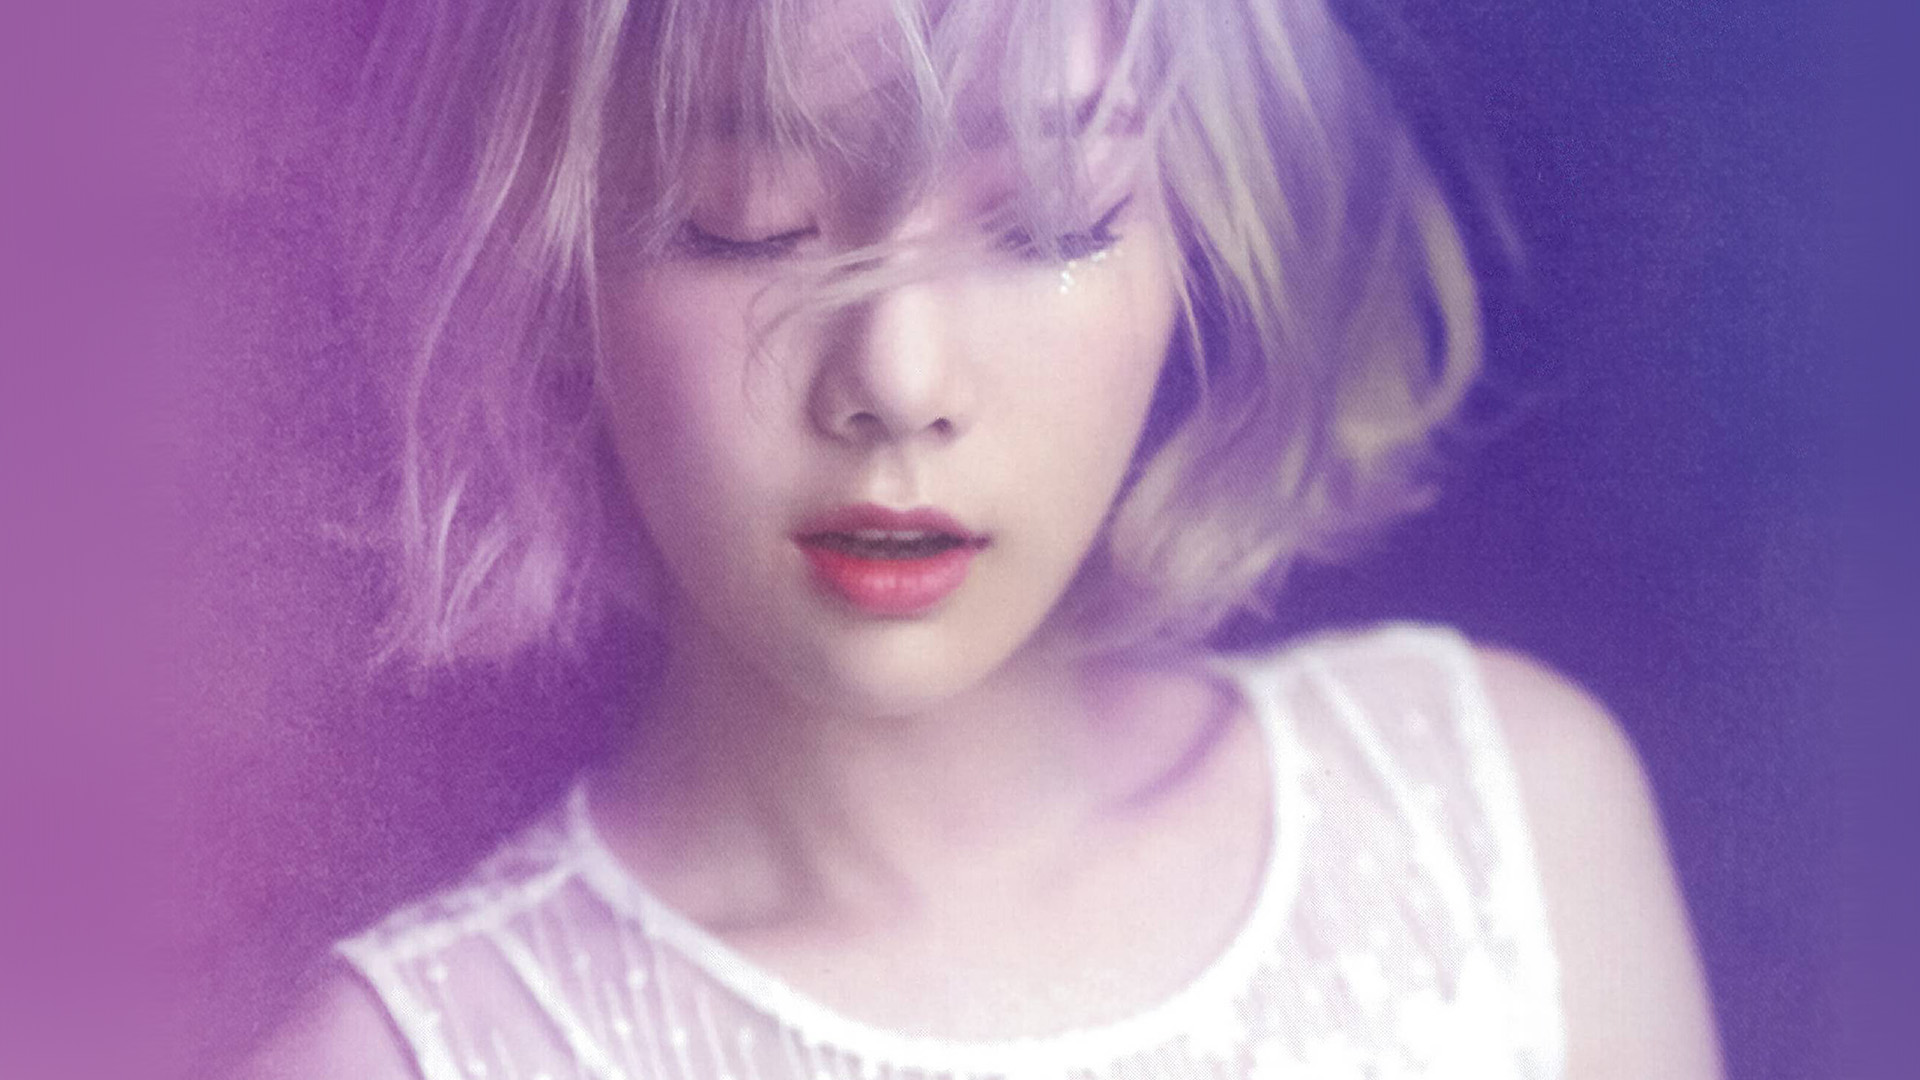 Taeyeon Cute Wallpaper Hl10 Taeyeon Kpop Snsd Purple Pink Girl Wallpaper